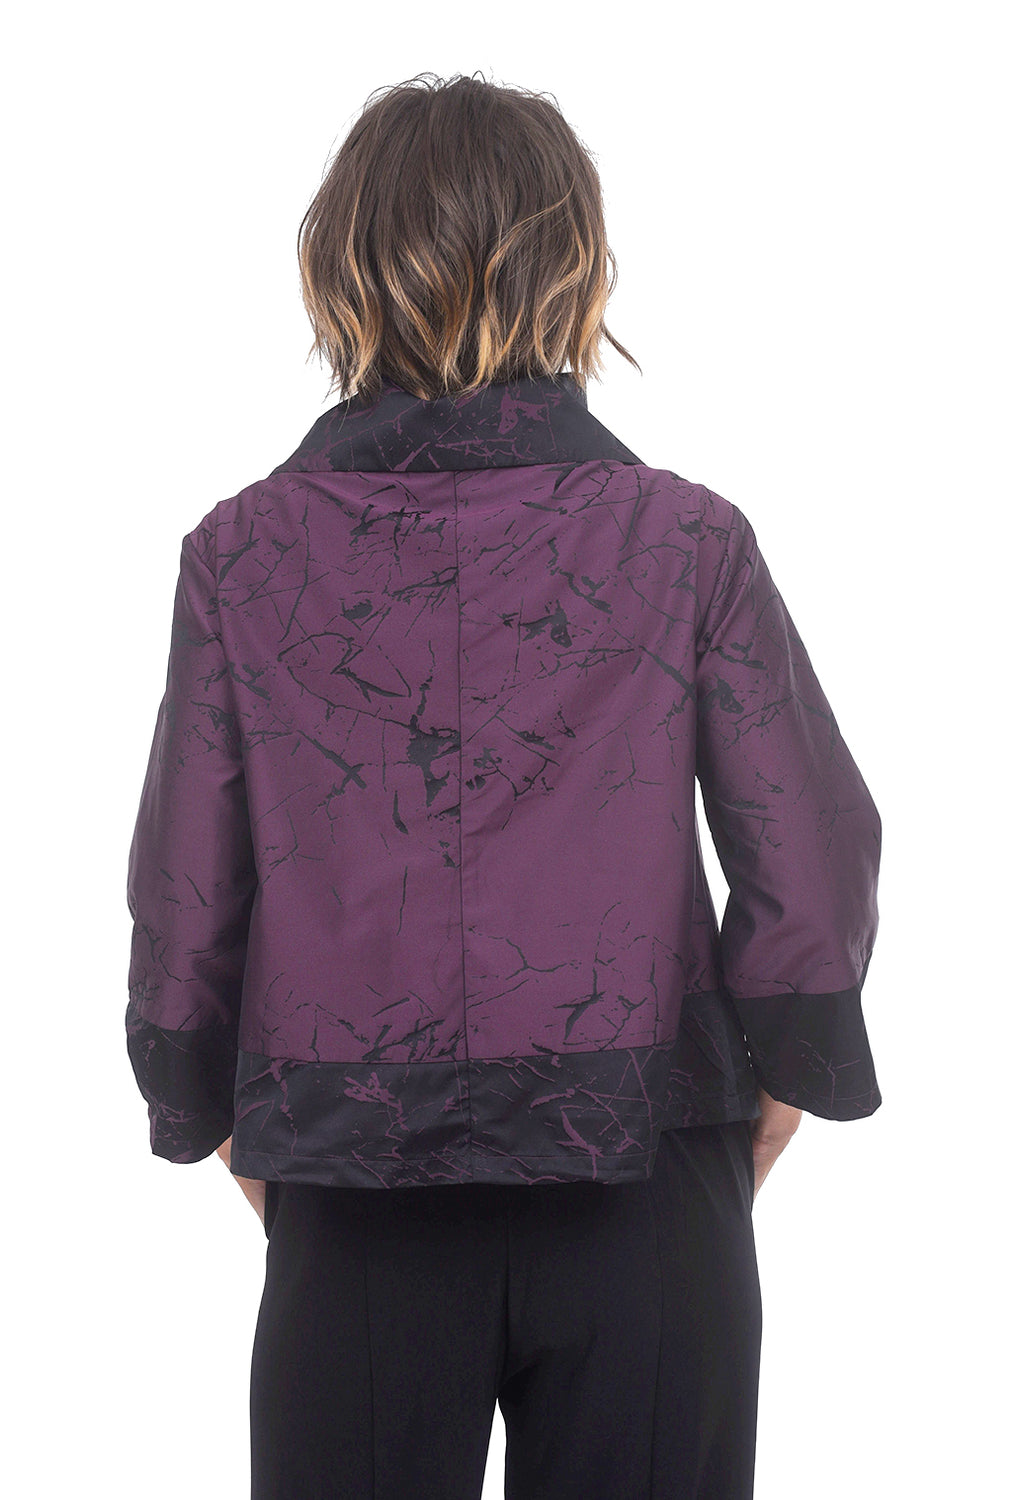 Memory Crackle Liv Jacket, Mulberry